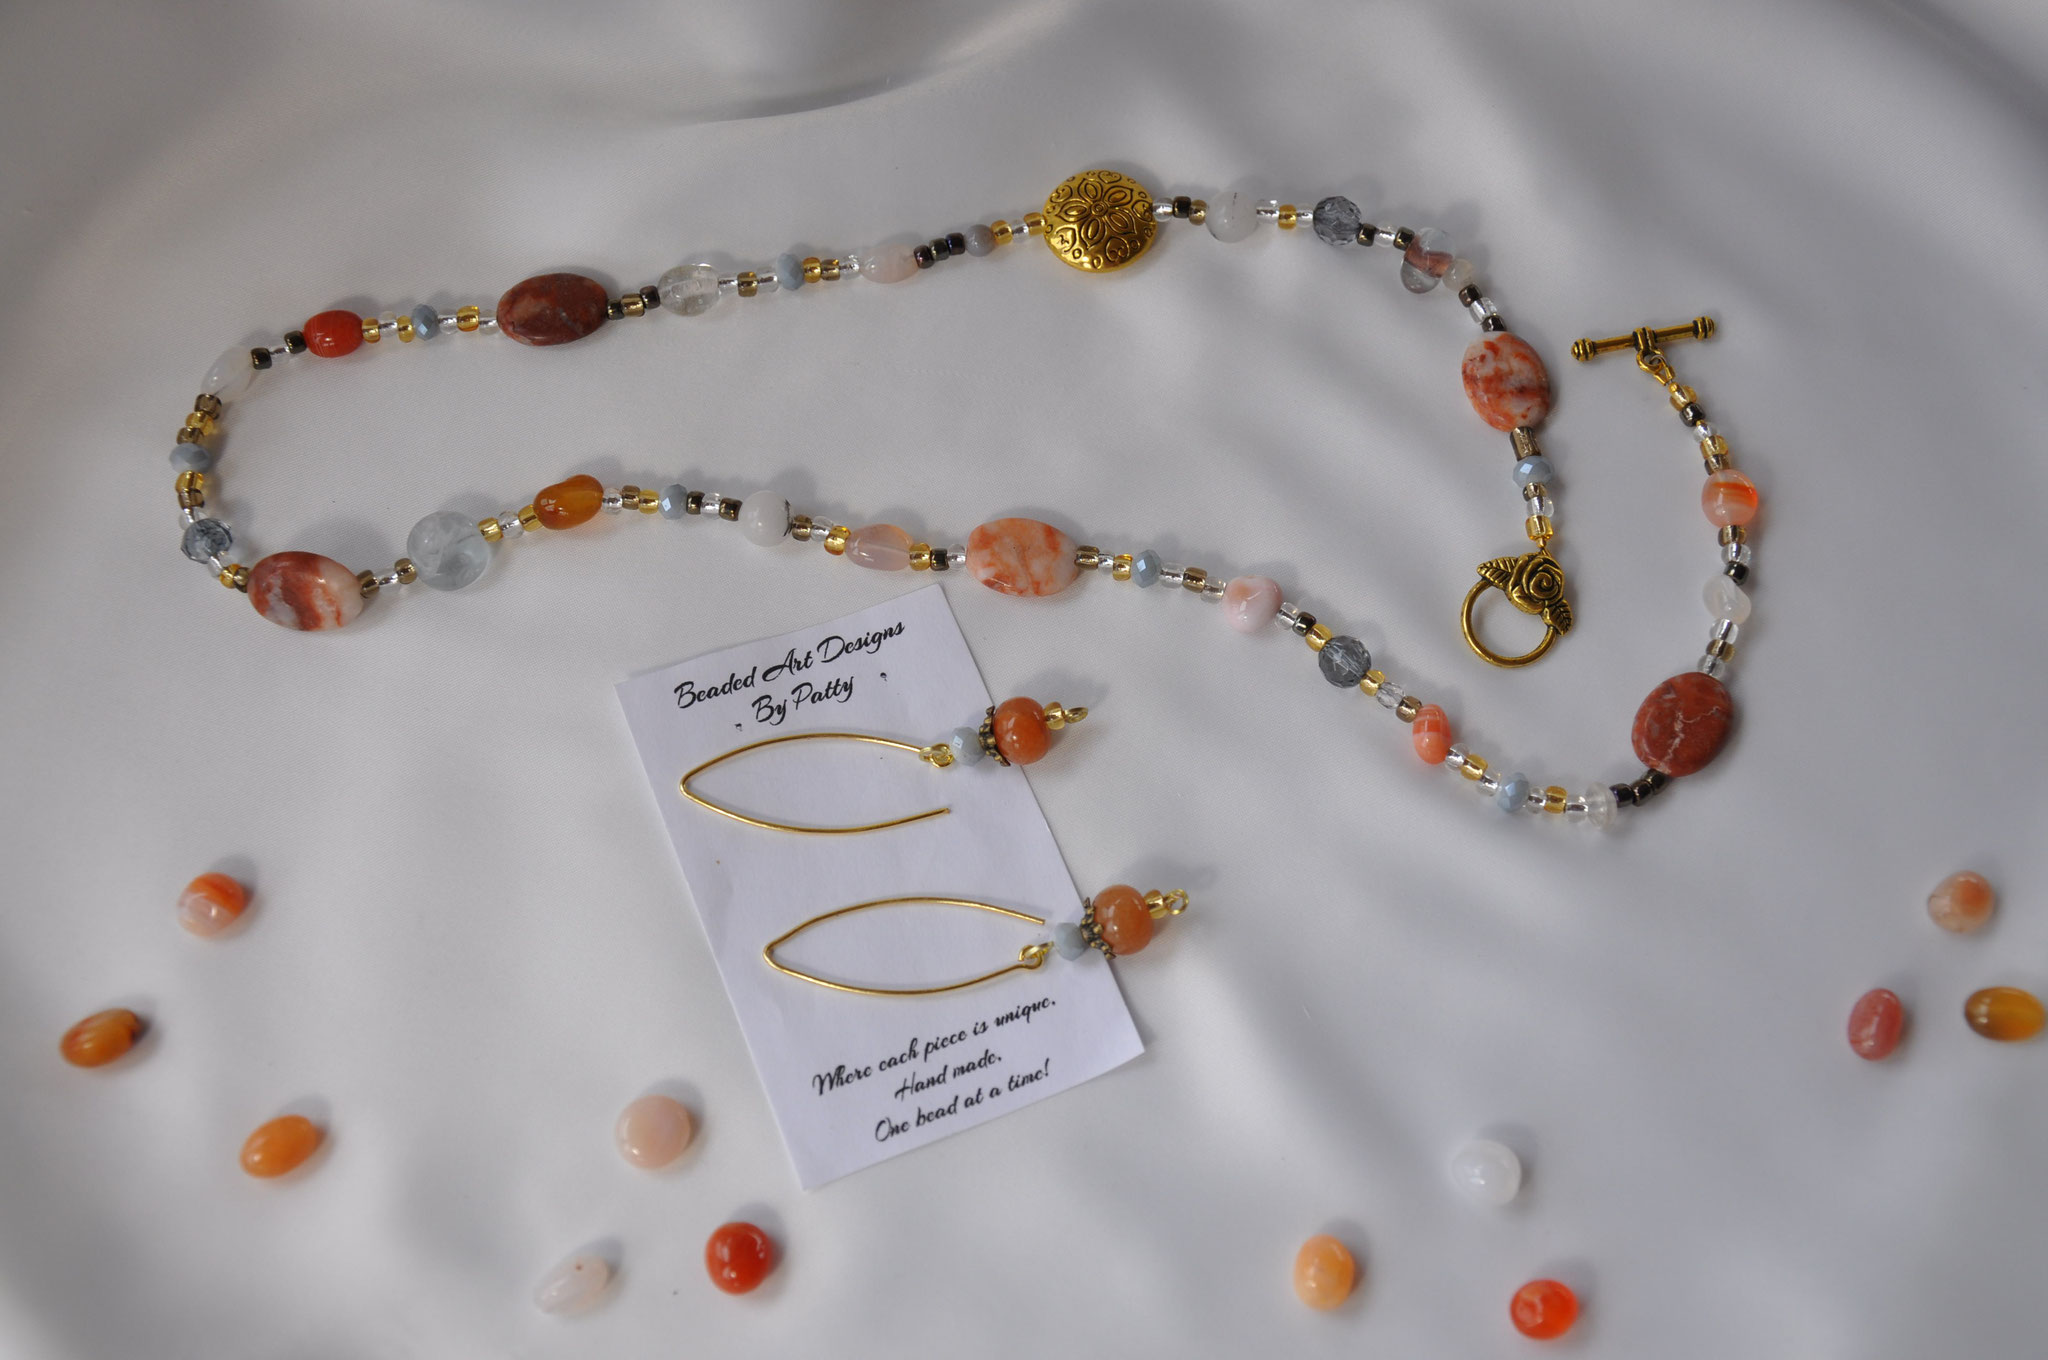 Tangerine Time   Assorted Gemstones, Metal and seed beads  Necklace 24 inches  $45.00  Marching Earring   $20.00